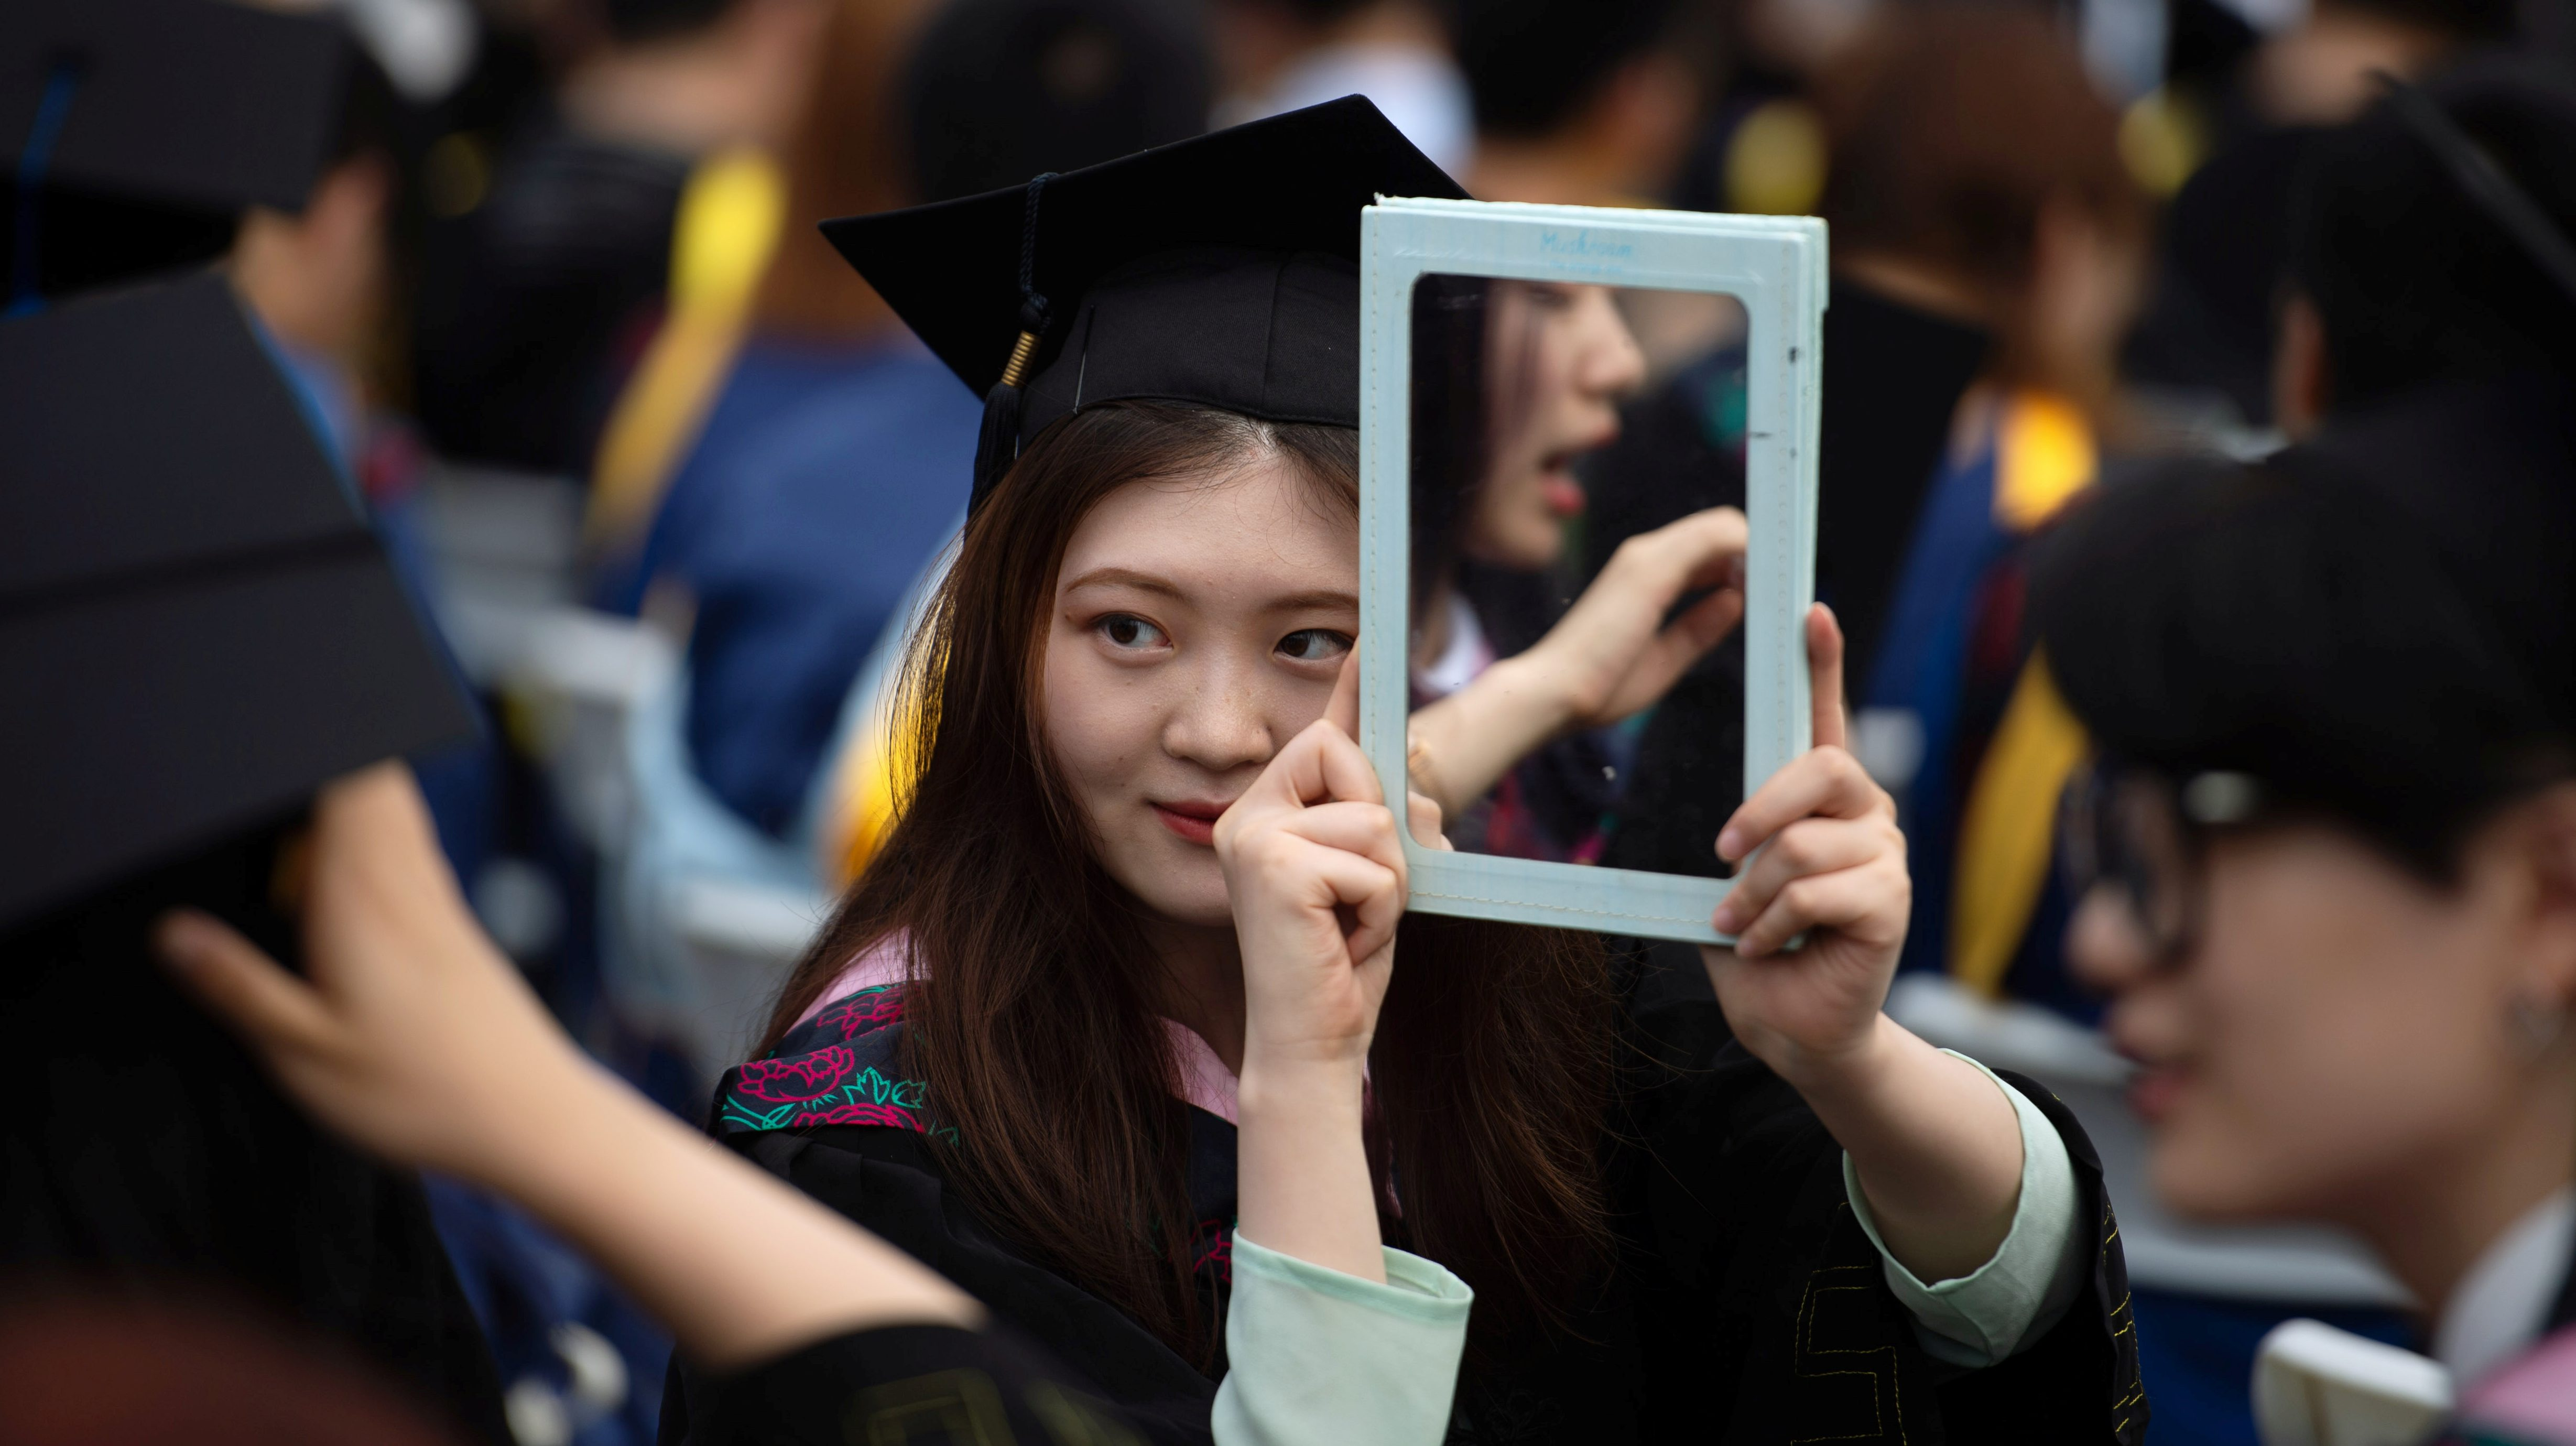 Graduates, including students who could not attend last year due to the coronavirus disease (COVID-19) pandemic, attend a graduation ceremony at Central China Normal University in Wuhan, Hubei province, China June 13, 2021. Picture taken June 13, 2021. REUTERS/Stringer CHINA OUT.